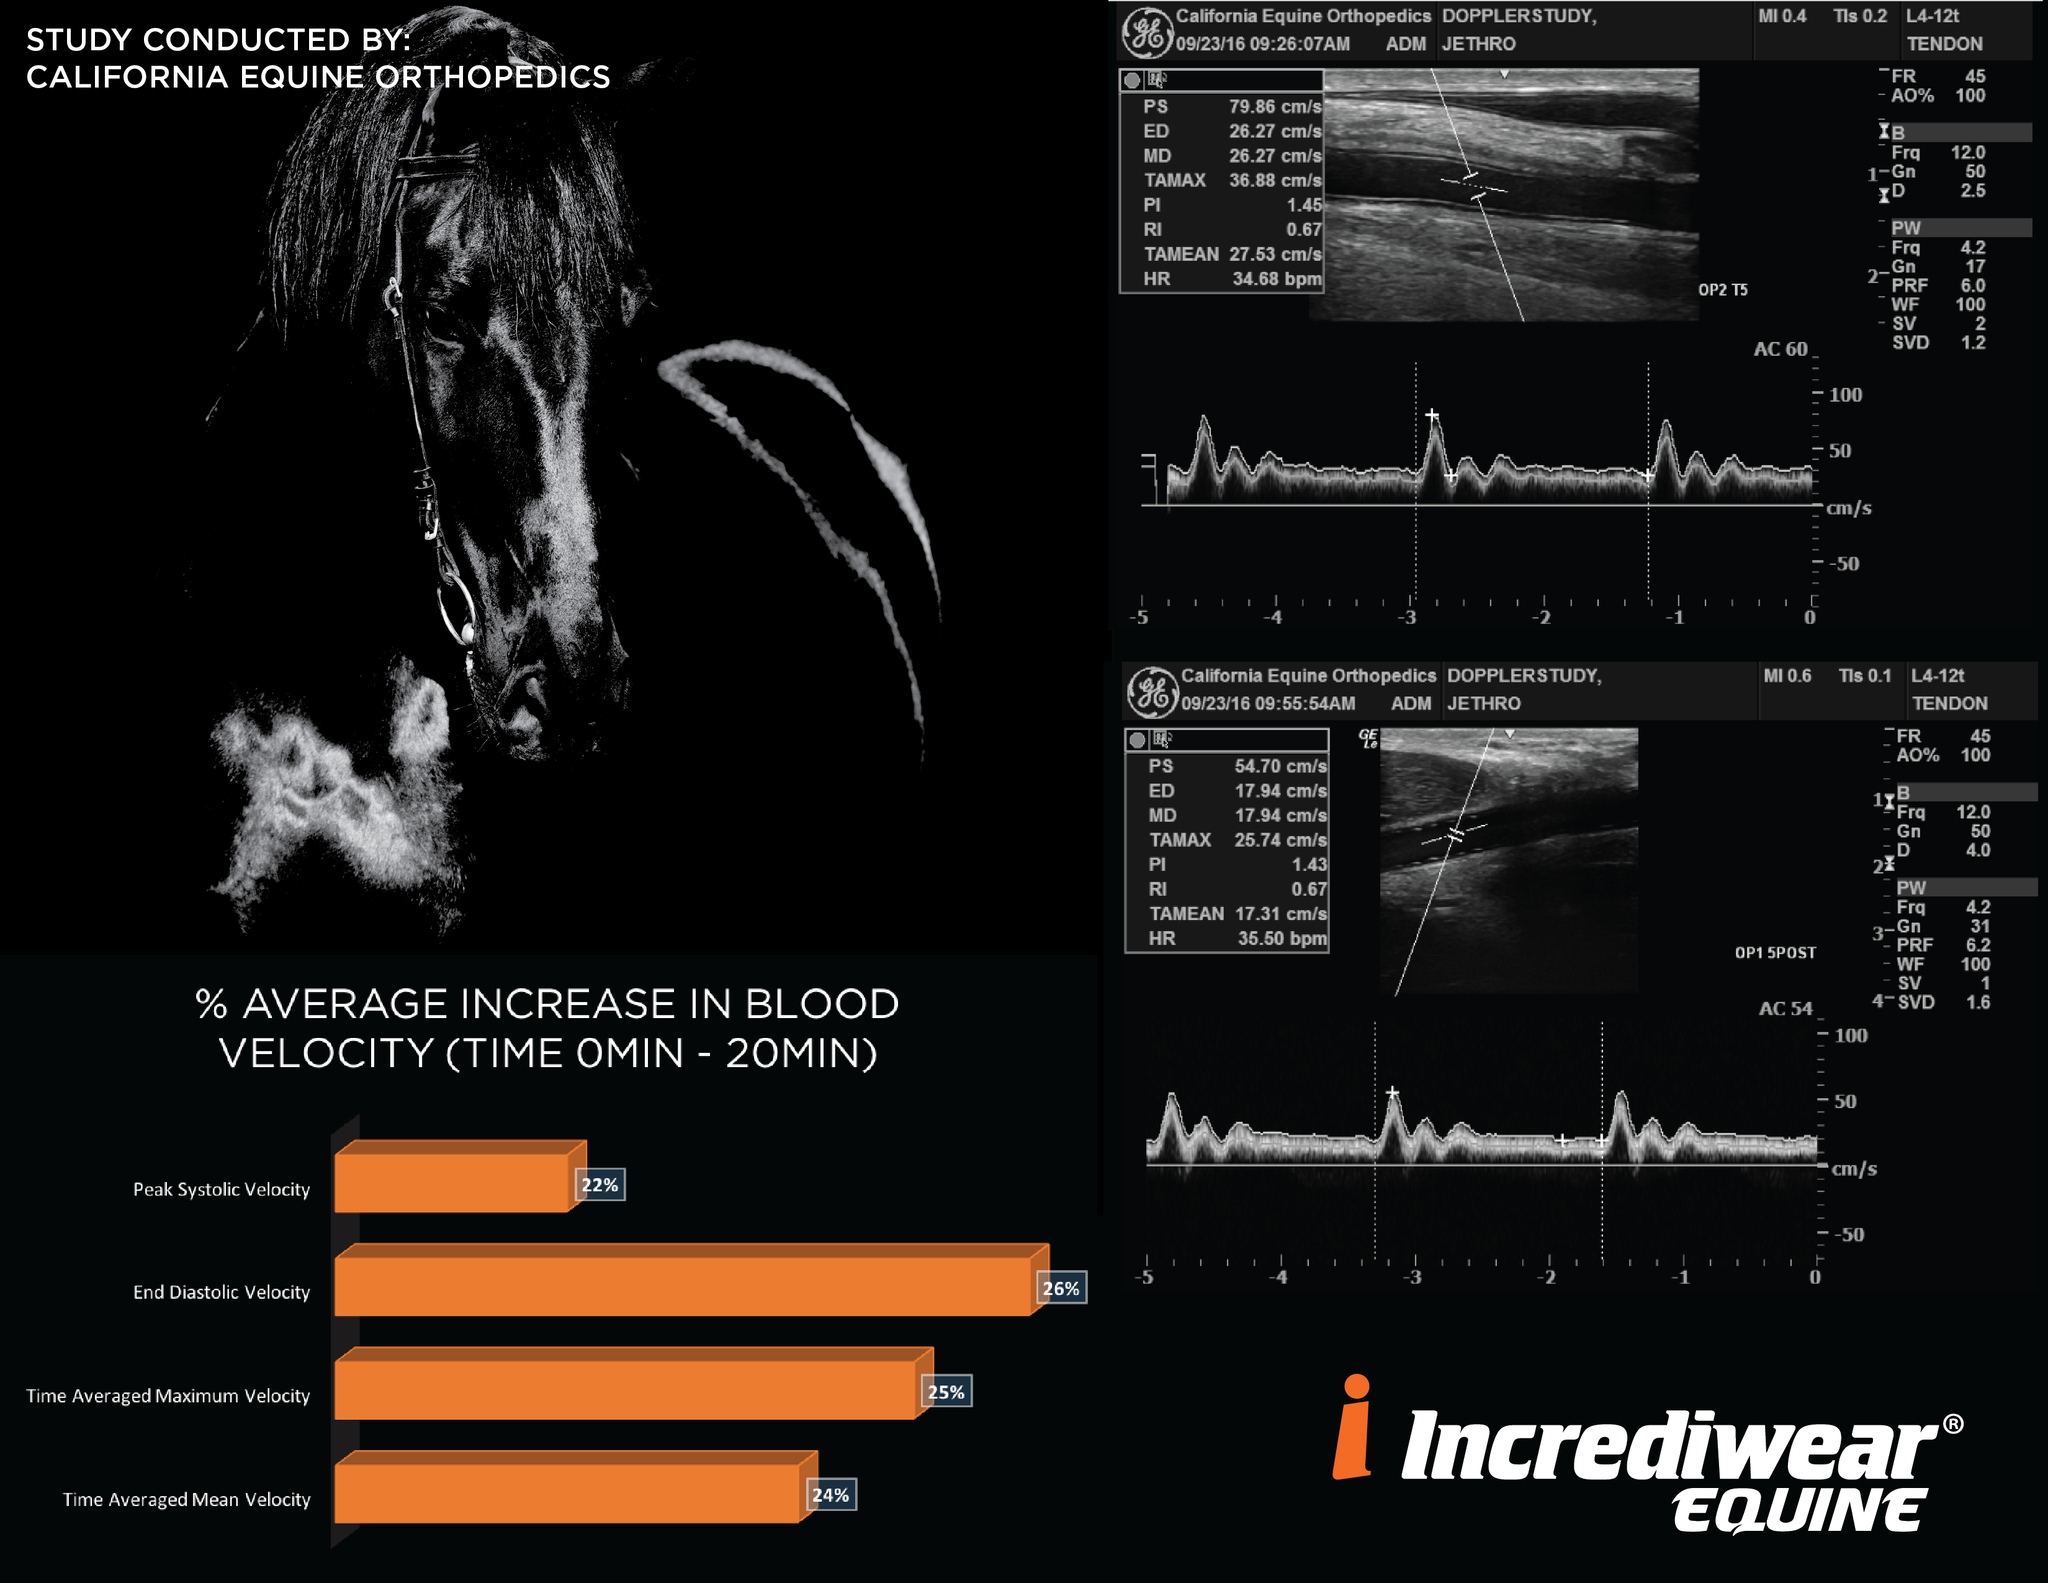 Incrediwear Equine Increase Blood Velocity Study